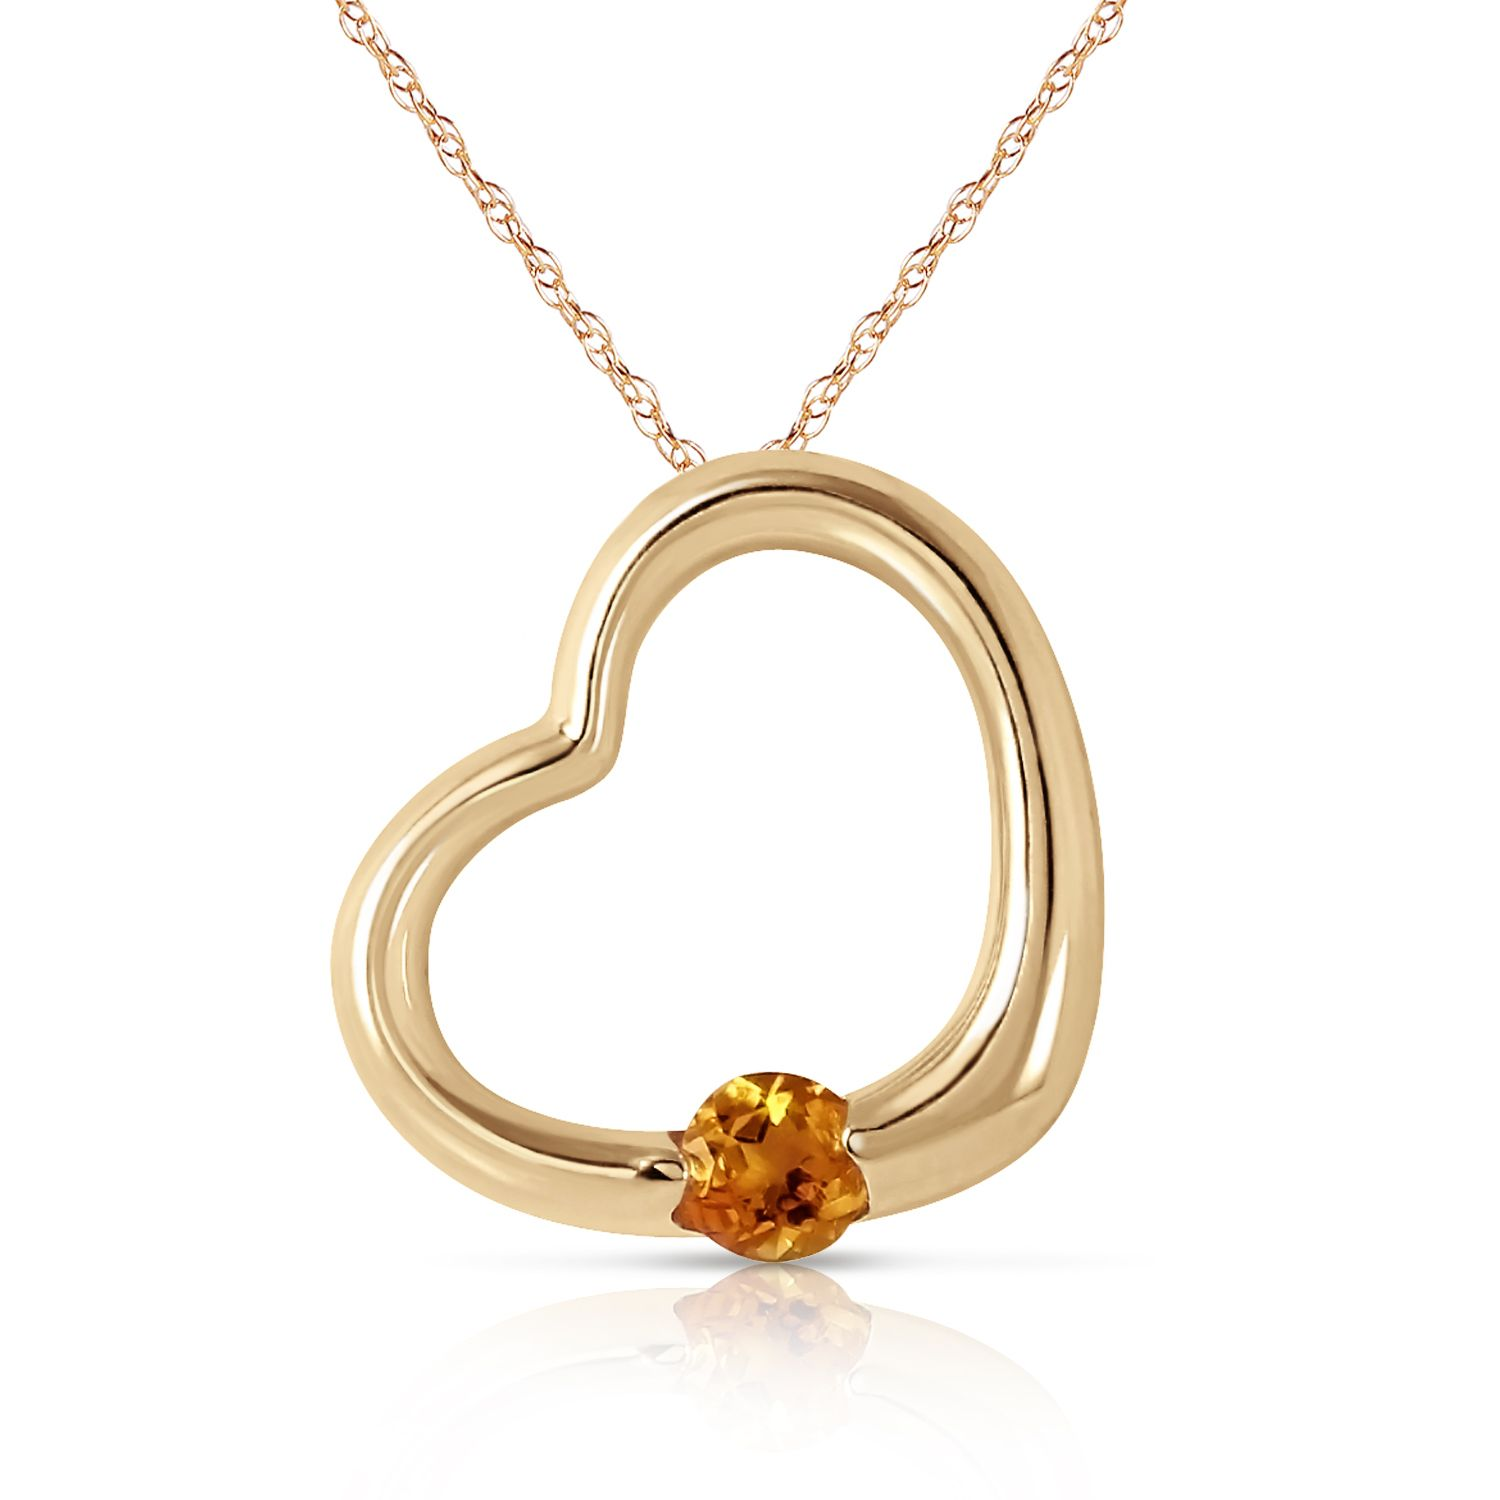 22+ Fine jewelry made in usa viral